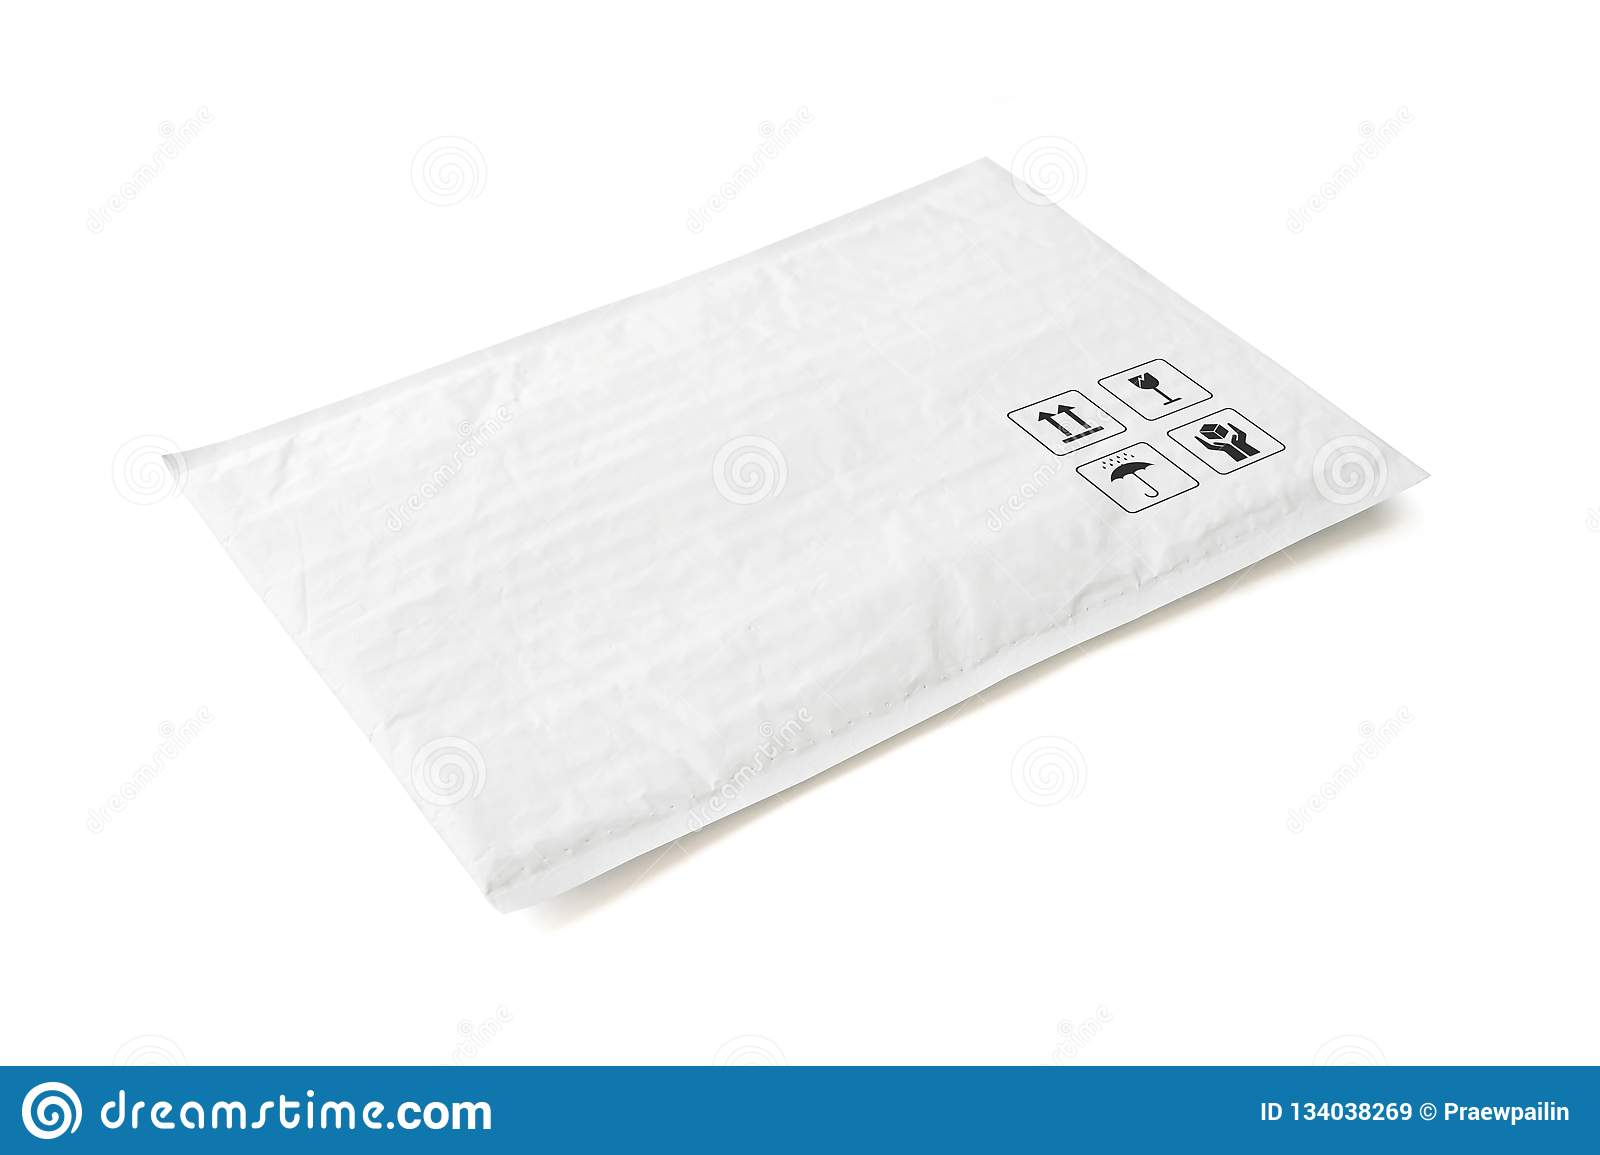 White postal package. Plastic parcel with fragile care sign and symbol. Object isolated on white background